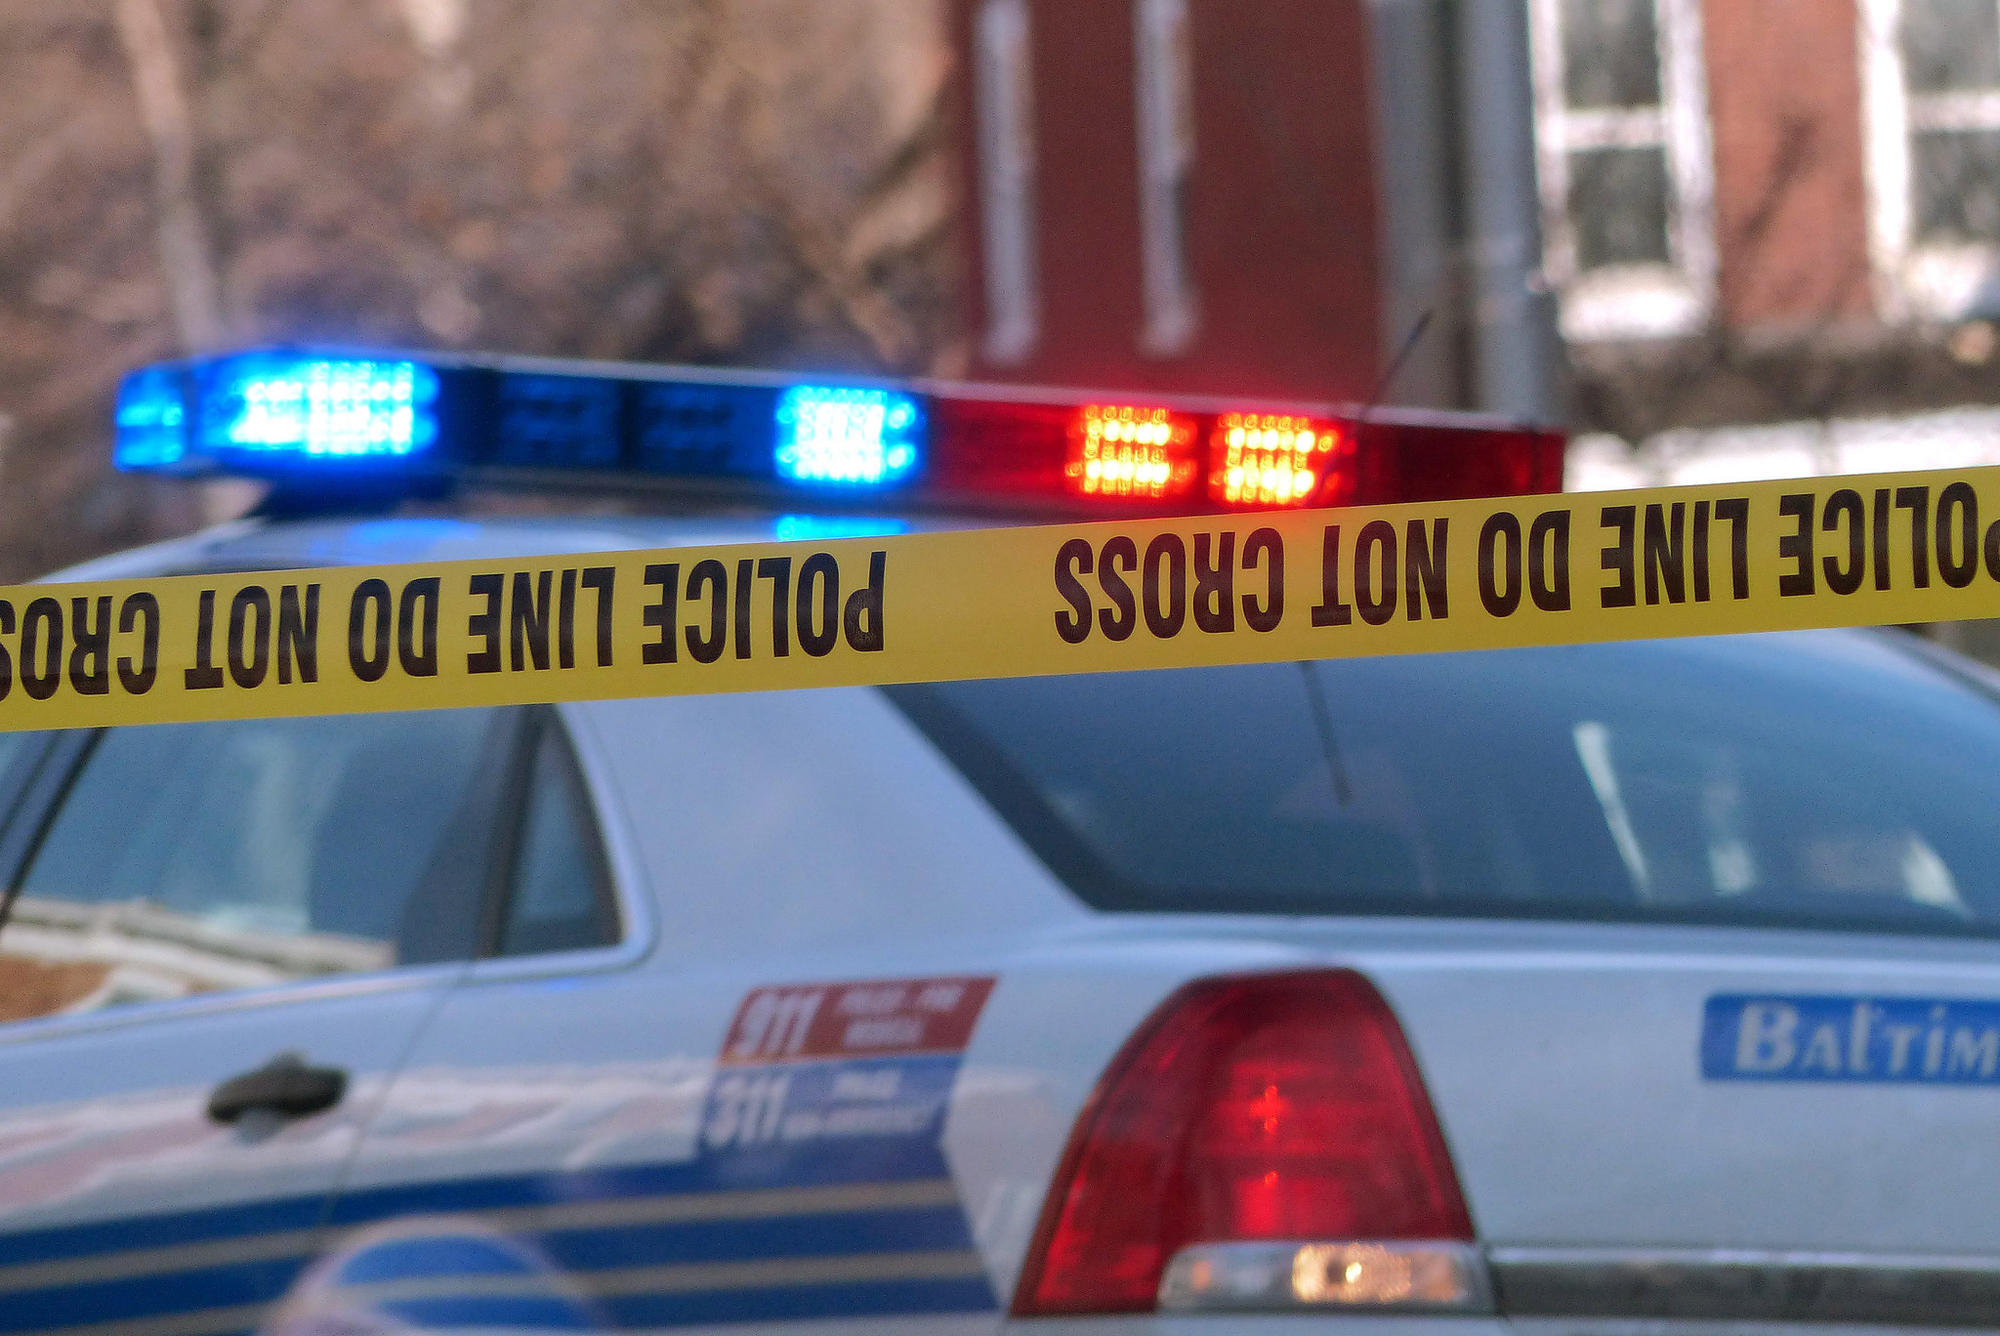 Police report violent start to the weekend with 9 injured, 1 killed in overnight shootings